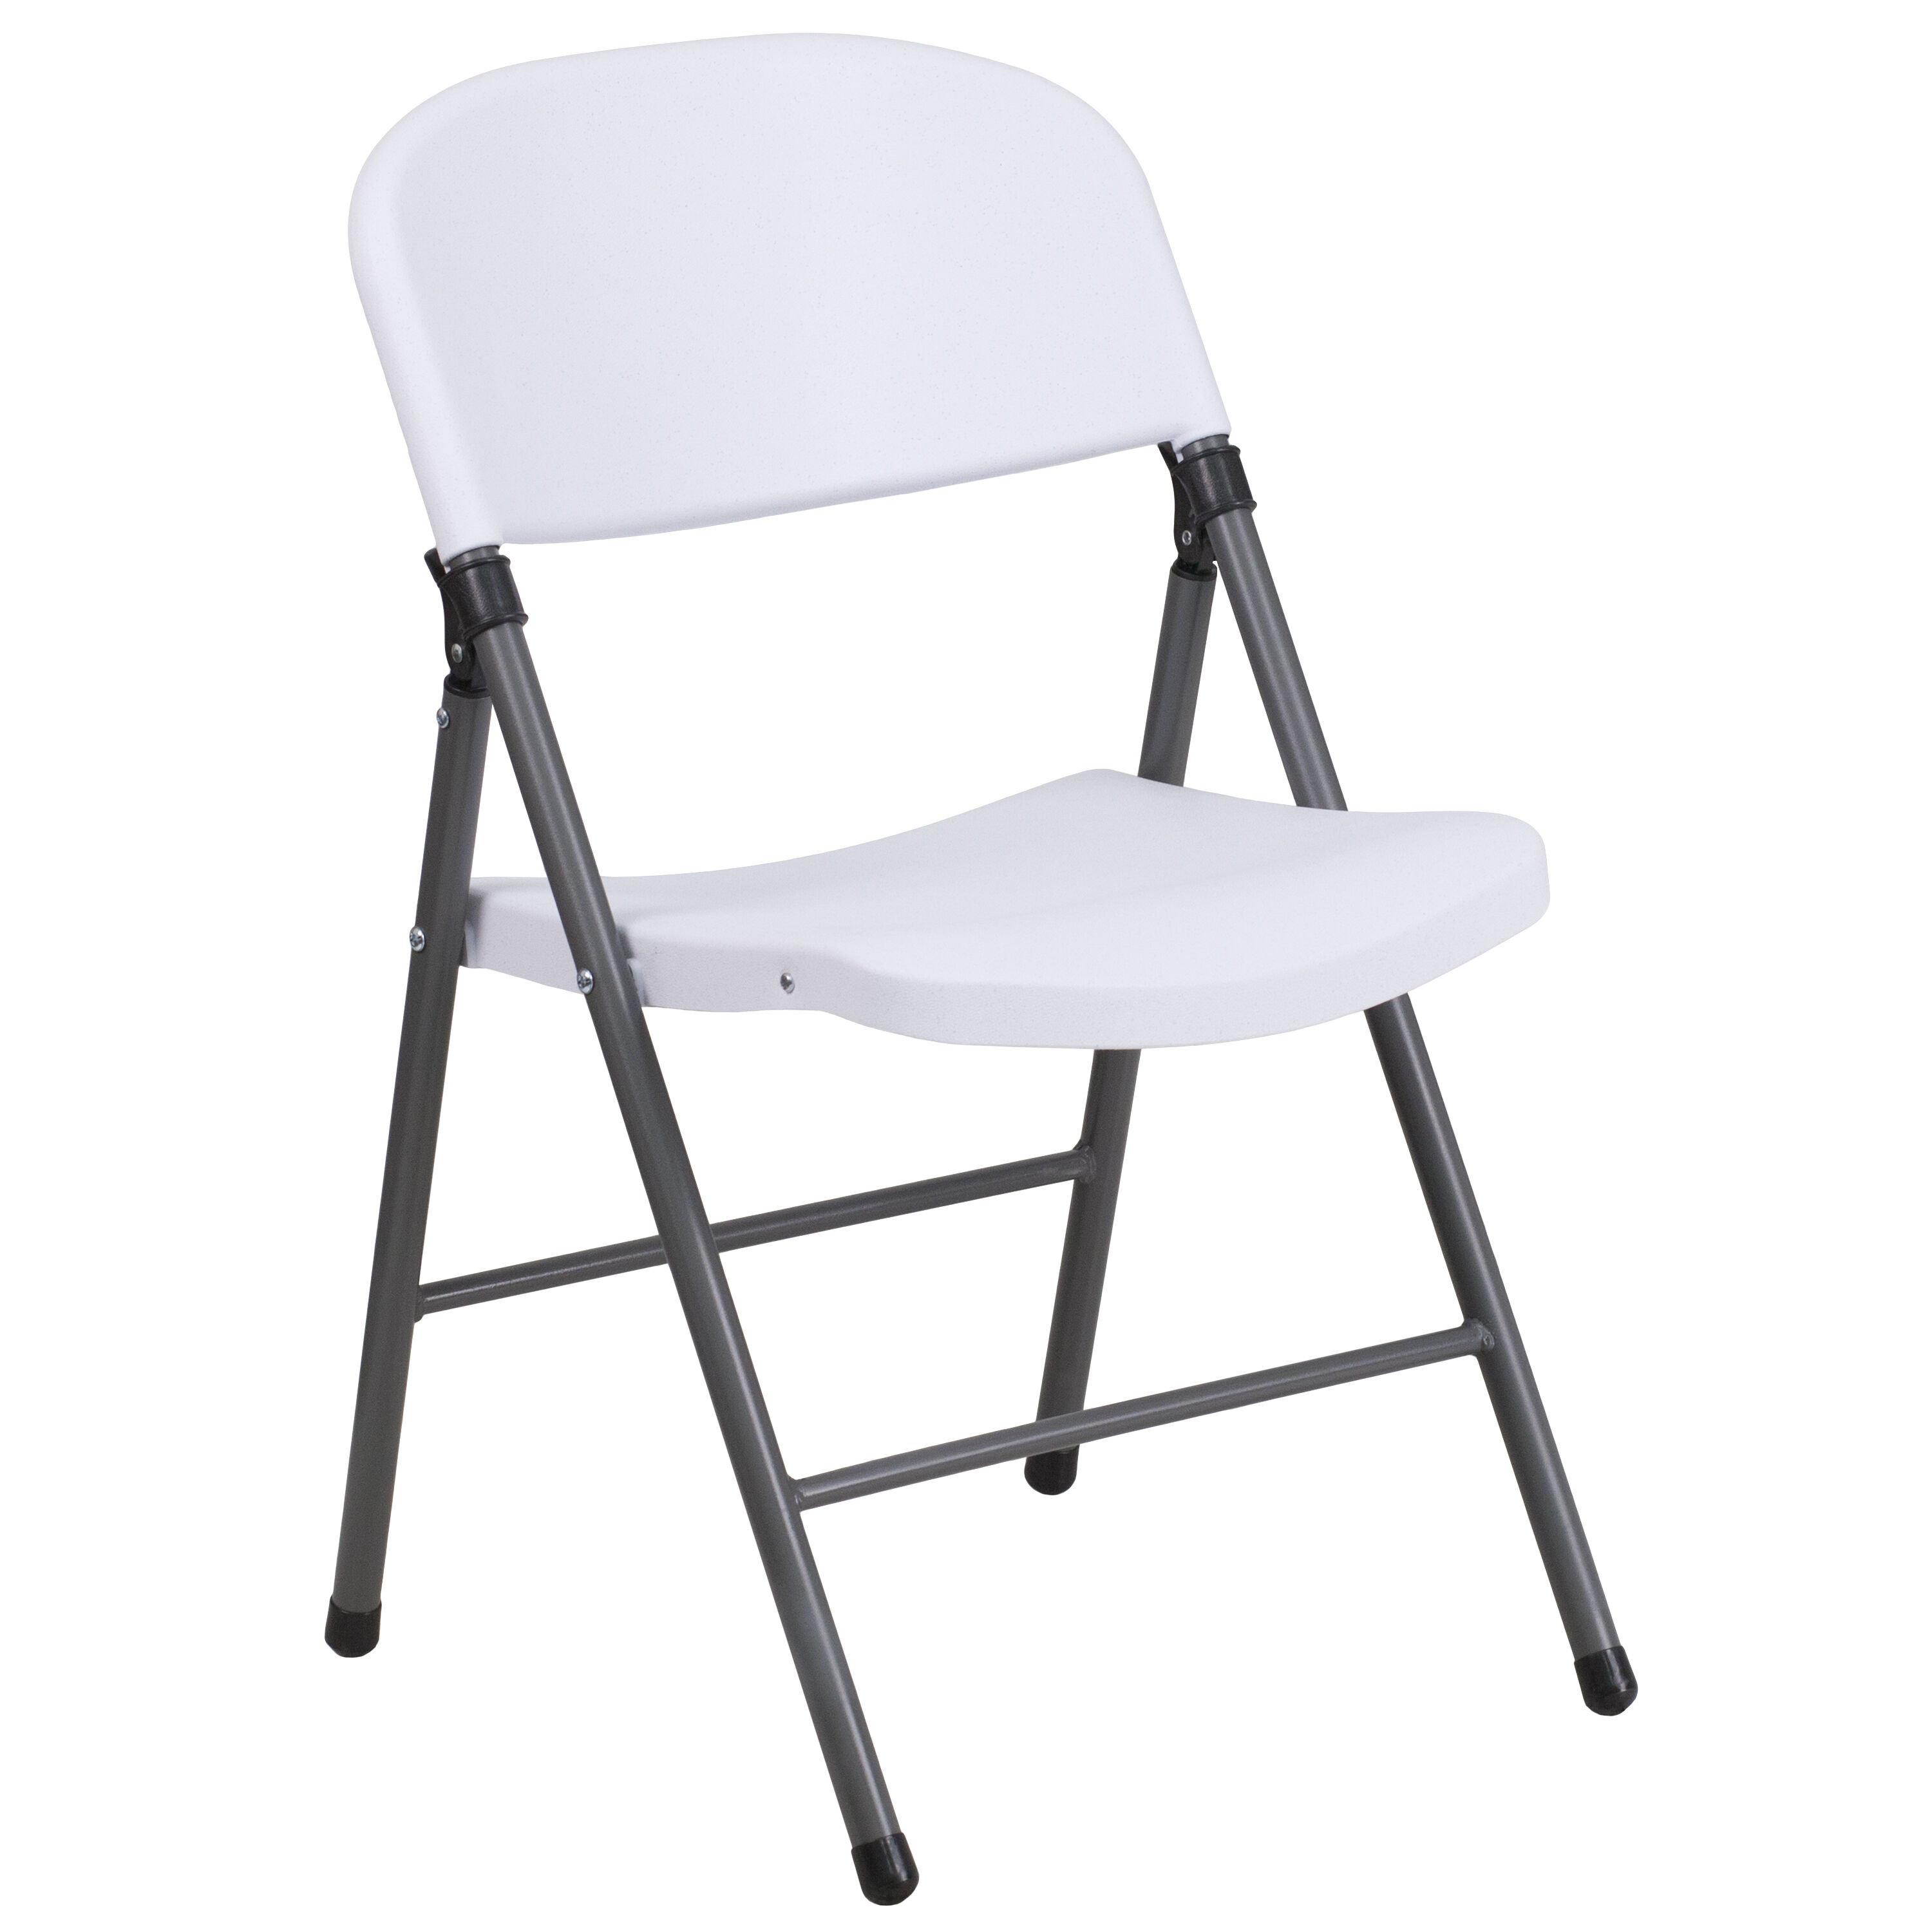 white plastic chairs lifetime table and foldingchairs4less folding capacity granite chair with charcoal frame